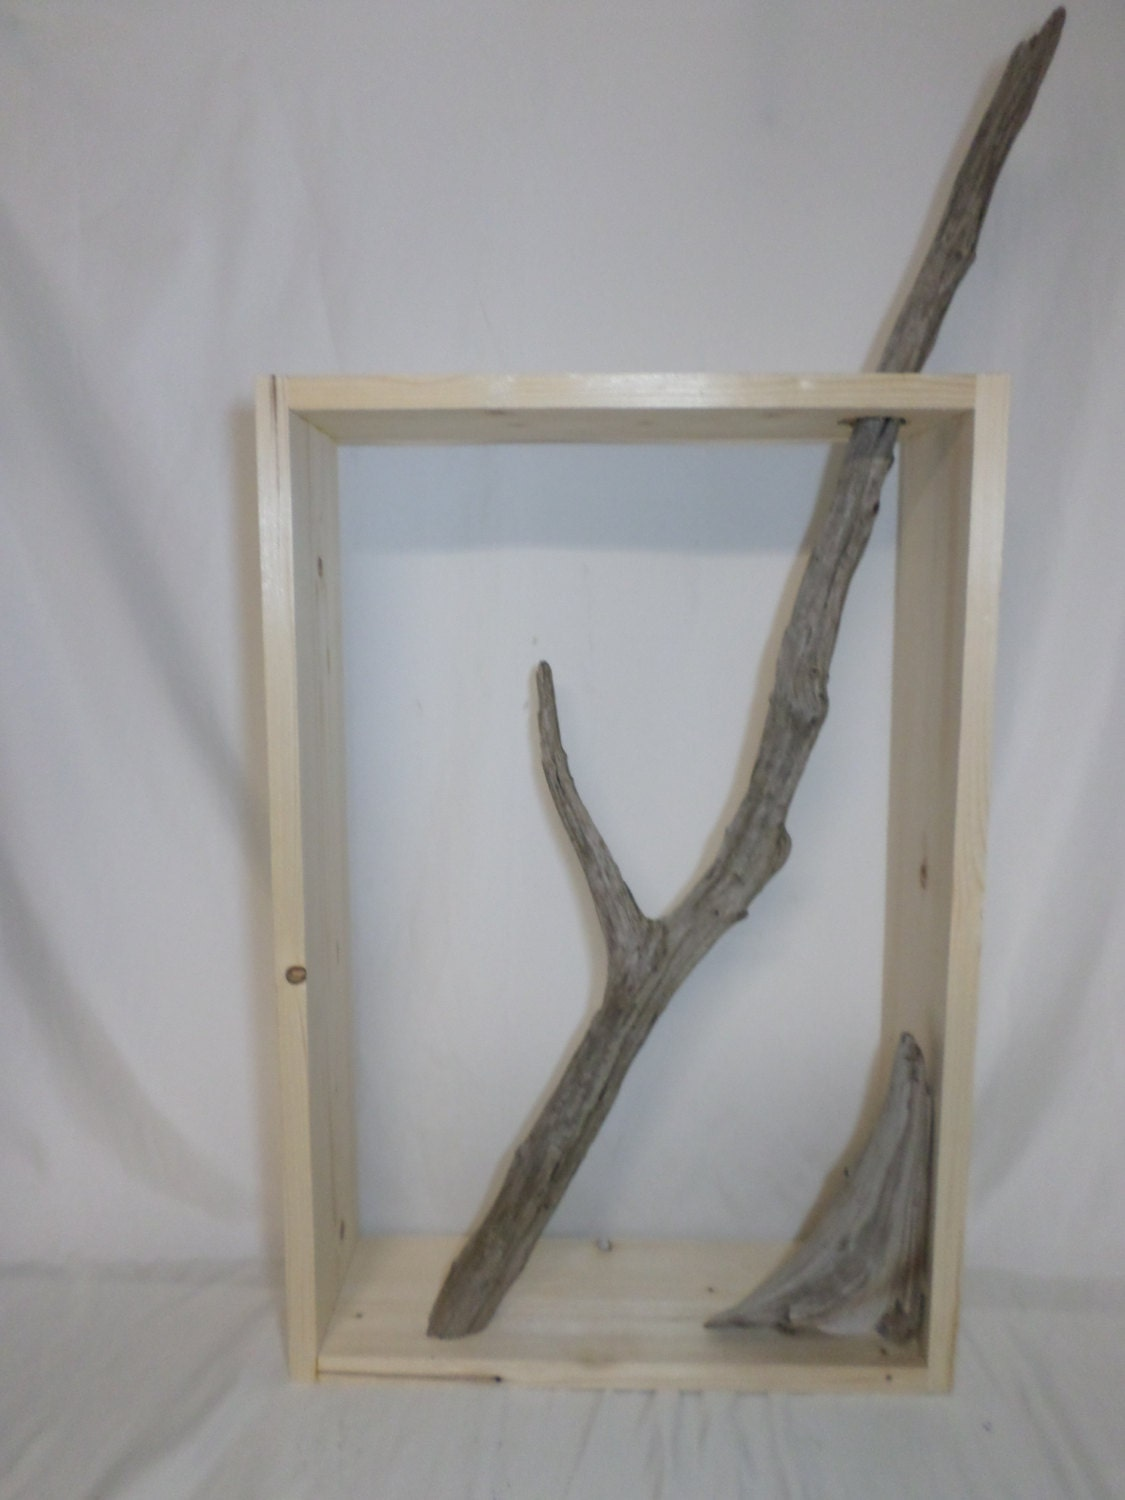 Decorative driftwood wall art unfinished craft project for Driftwood wall decor